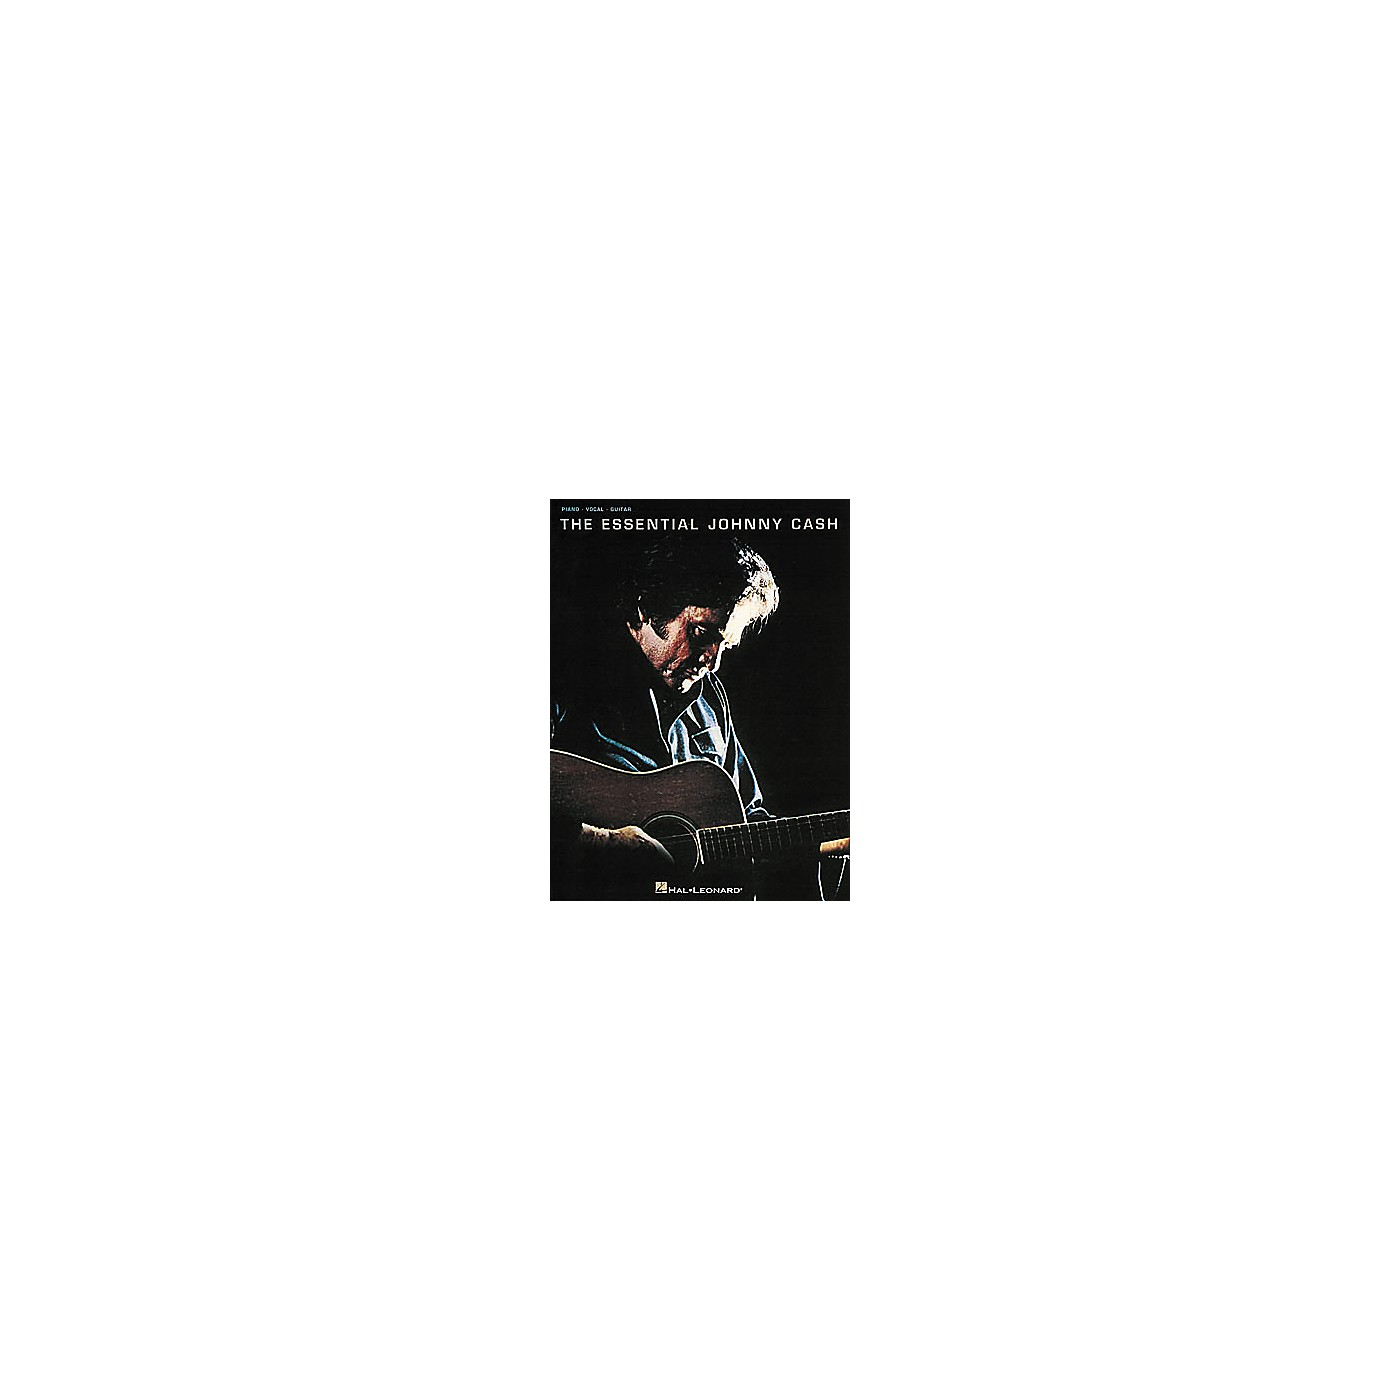 Hal Leonard The Essential Johnny Cash Piano, Vocal, Guitar Songbook thumbnail